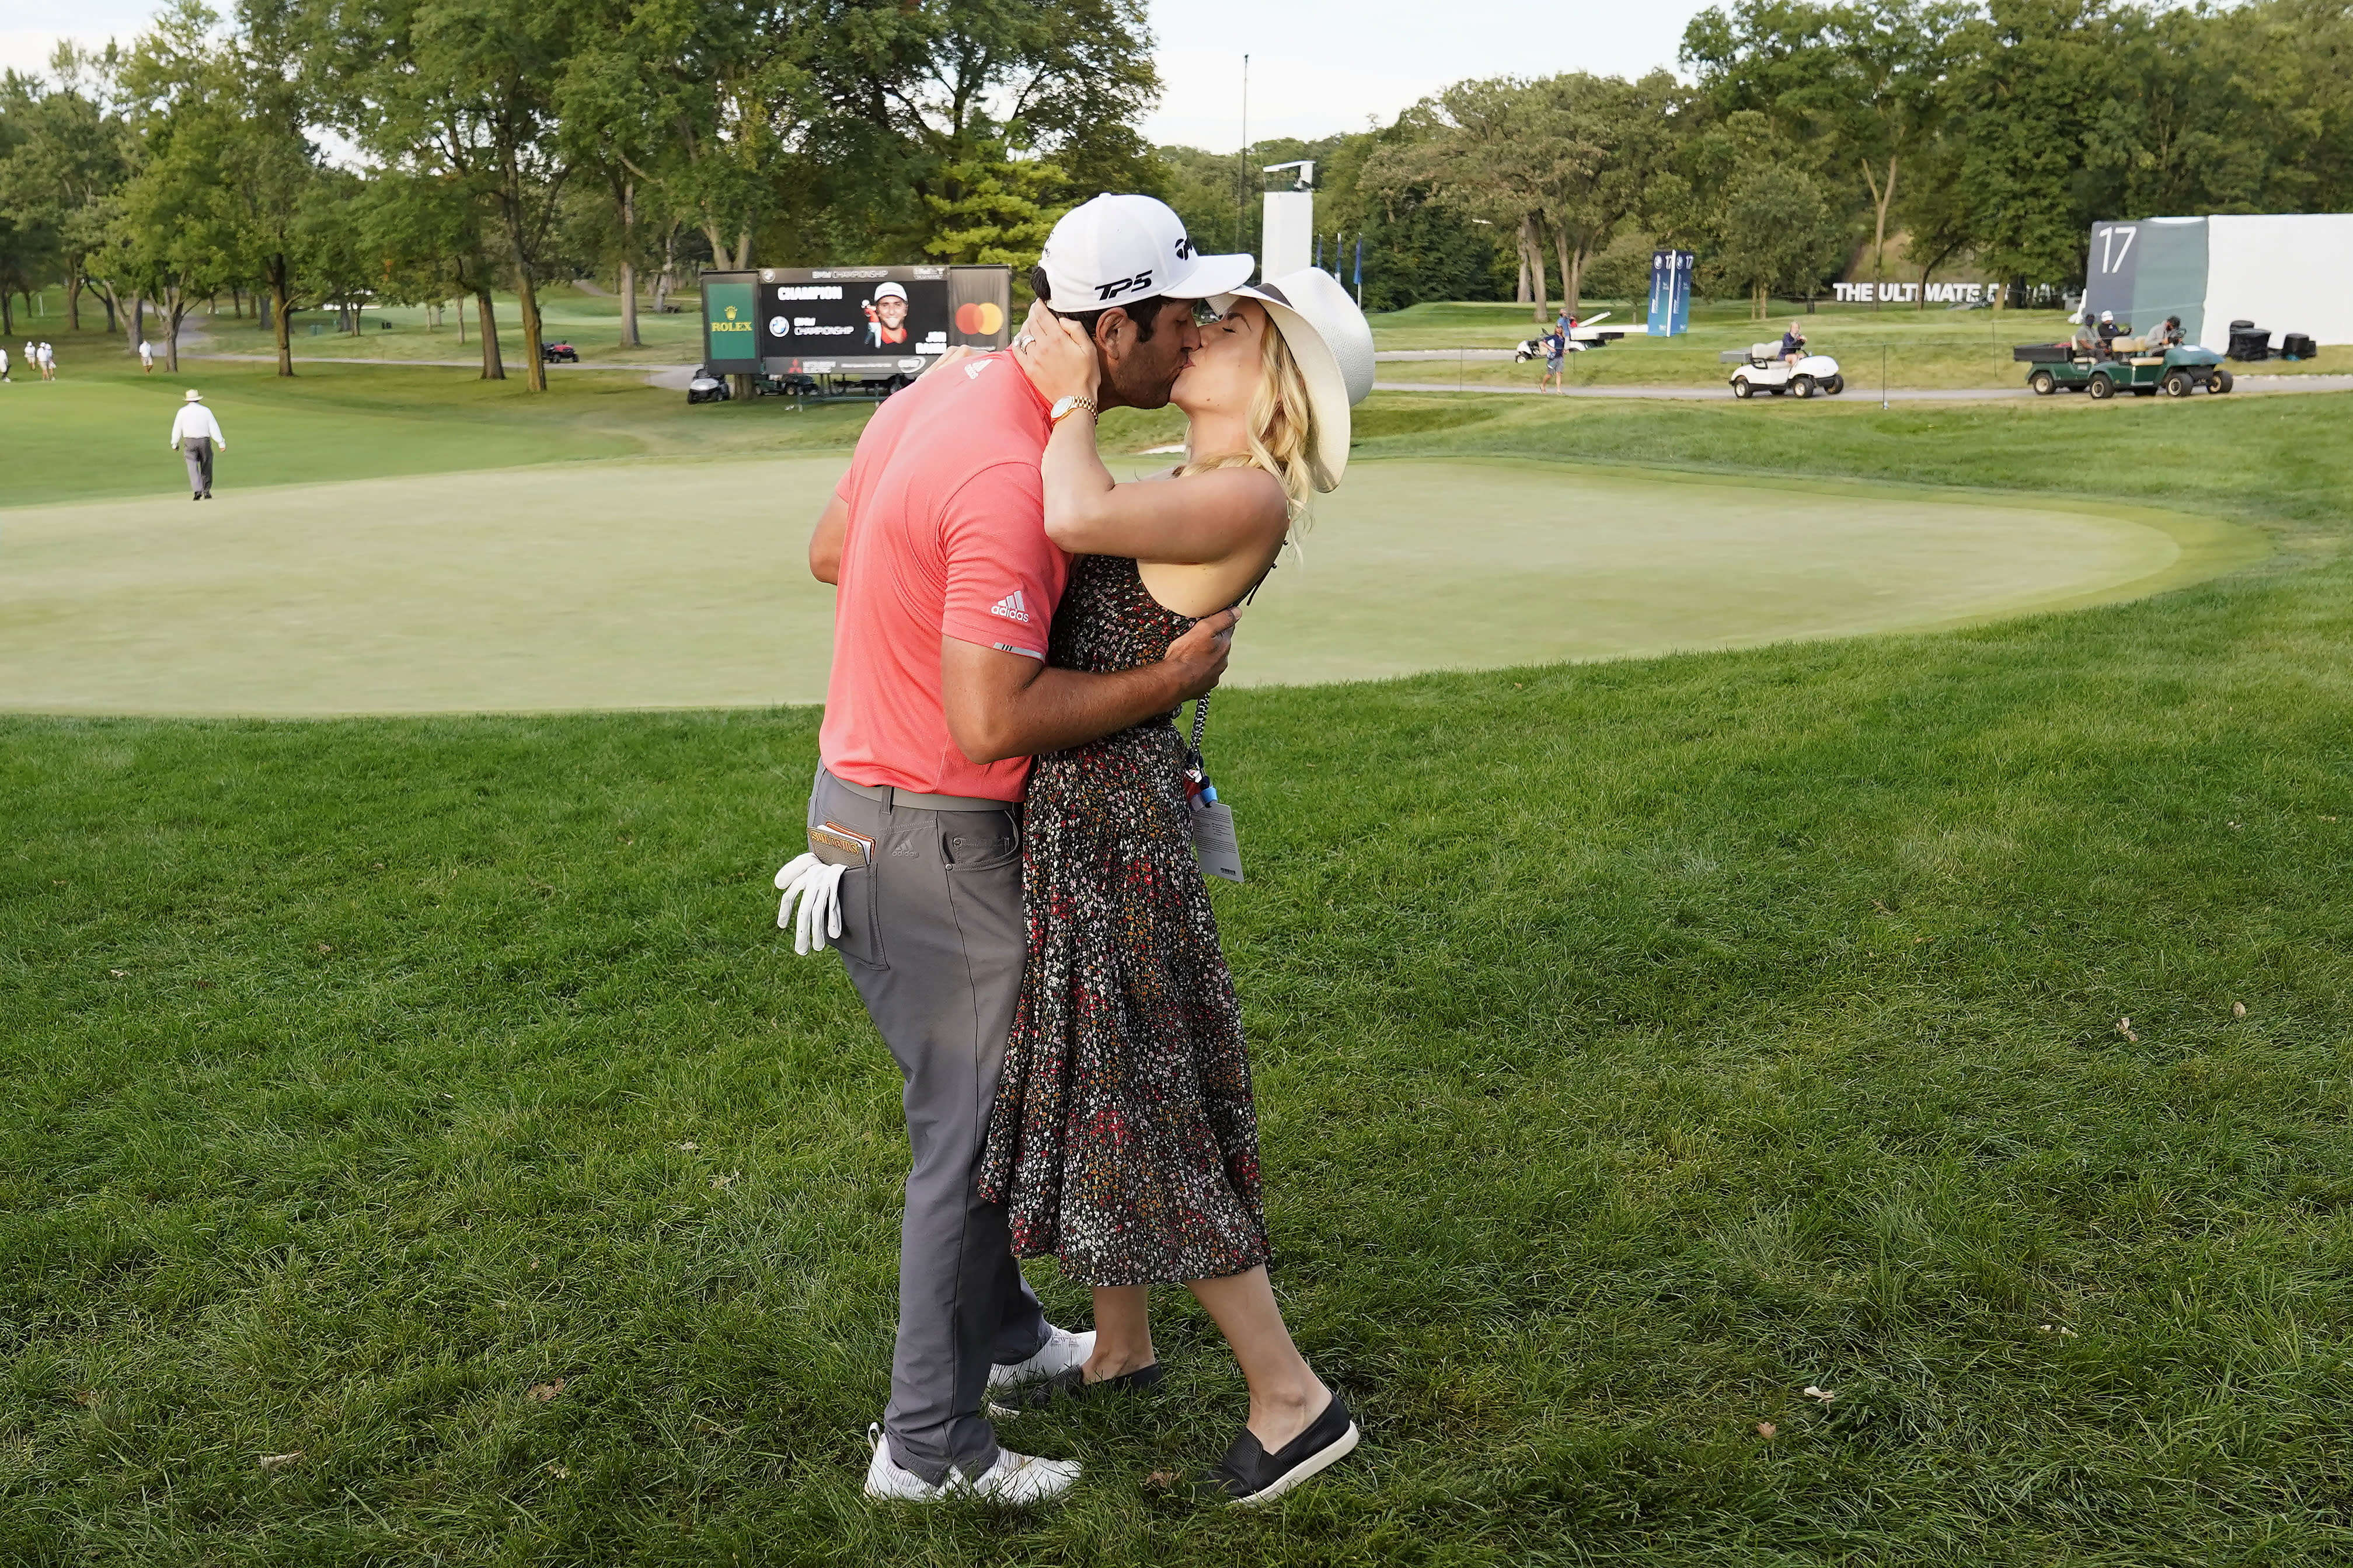 Jon Rahm, left, celebrates with his wife, Kelley Cahill, after winning the BMW Championship golf tournament at the Olympia Fields Country Club in Olympia Fields, Ill., Sunday, Aug. 30, 2020. (AP Photo/Charles Rex Arbogast)